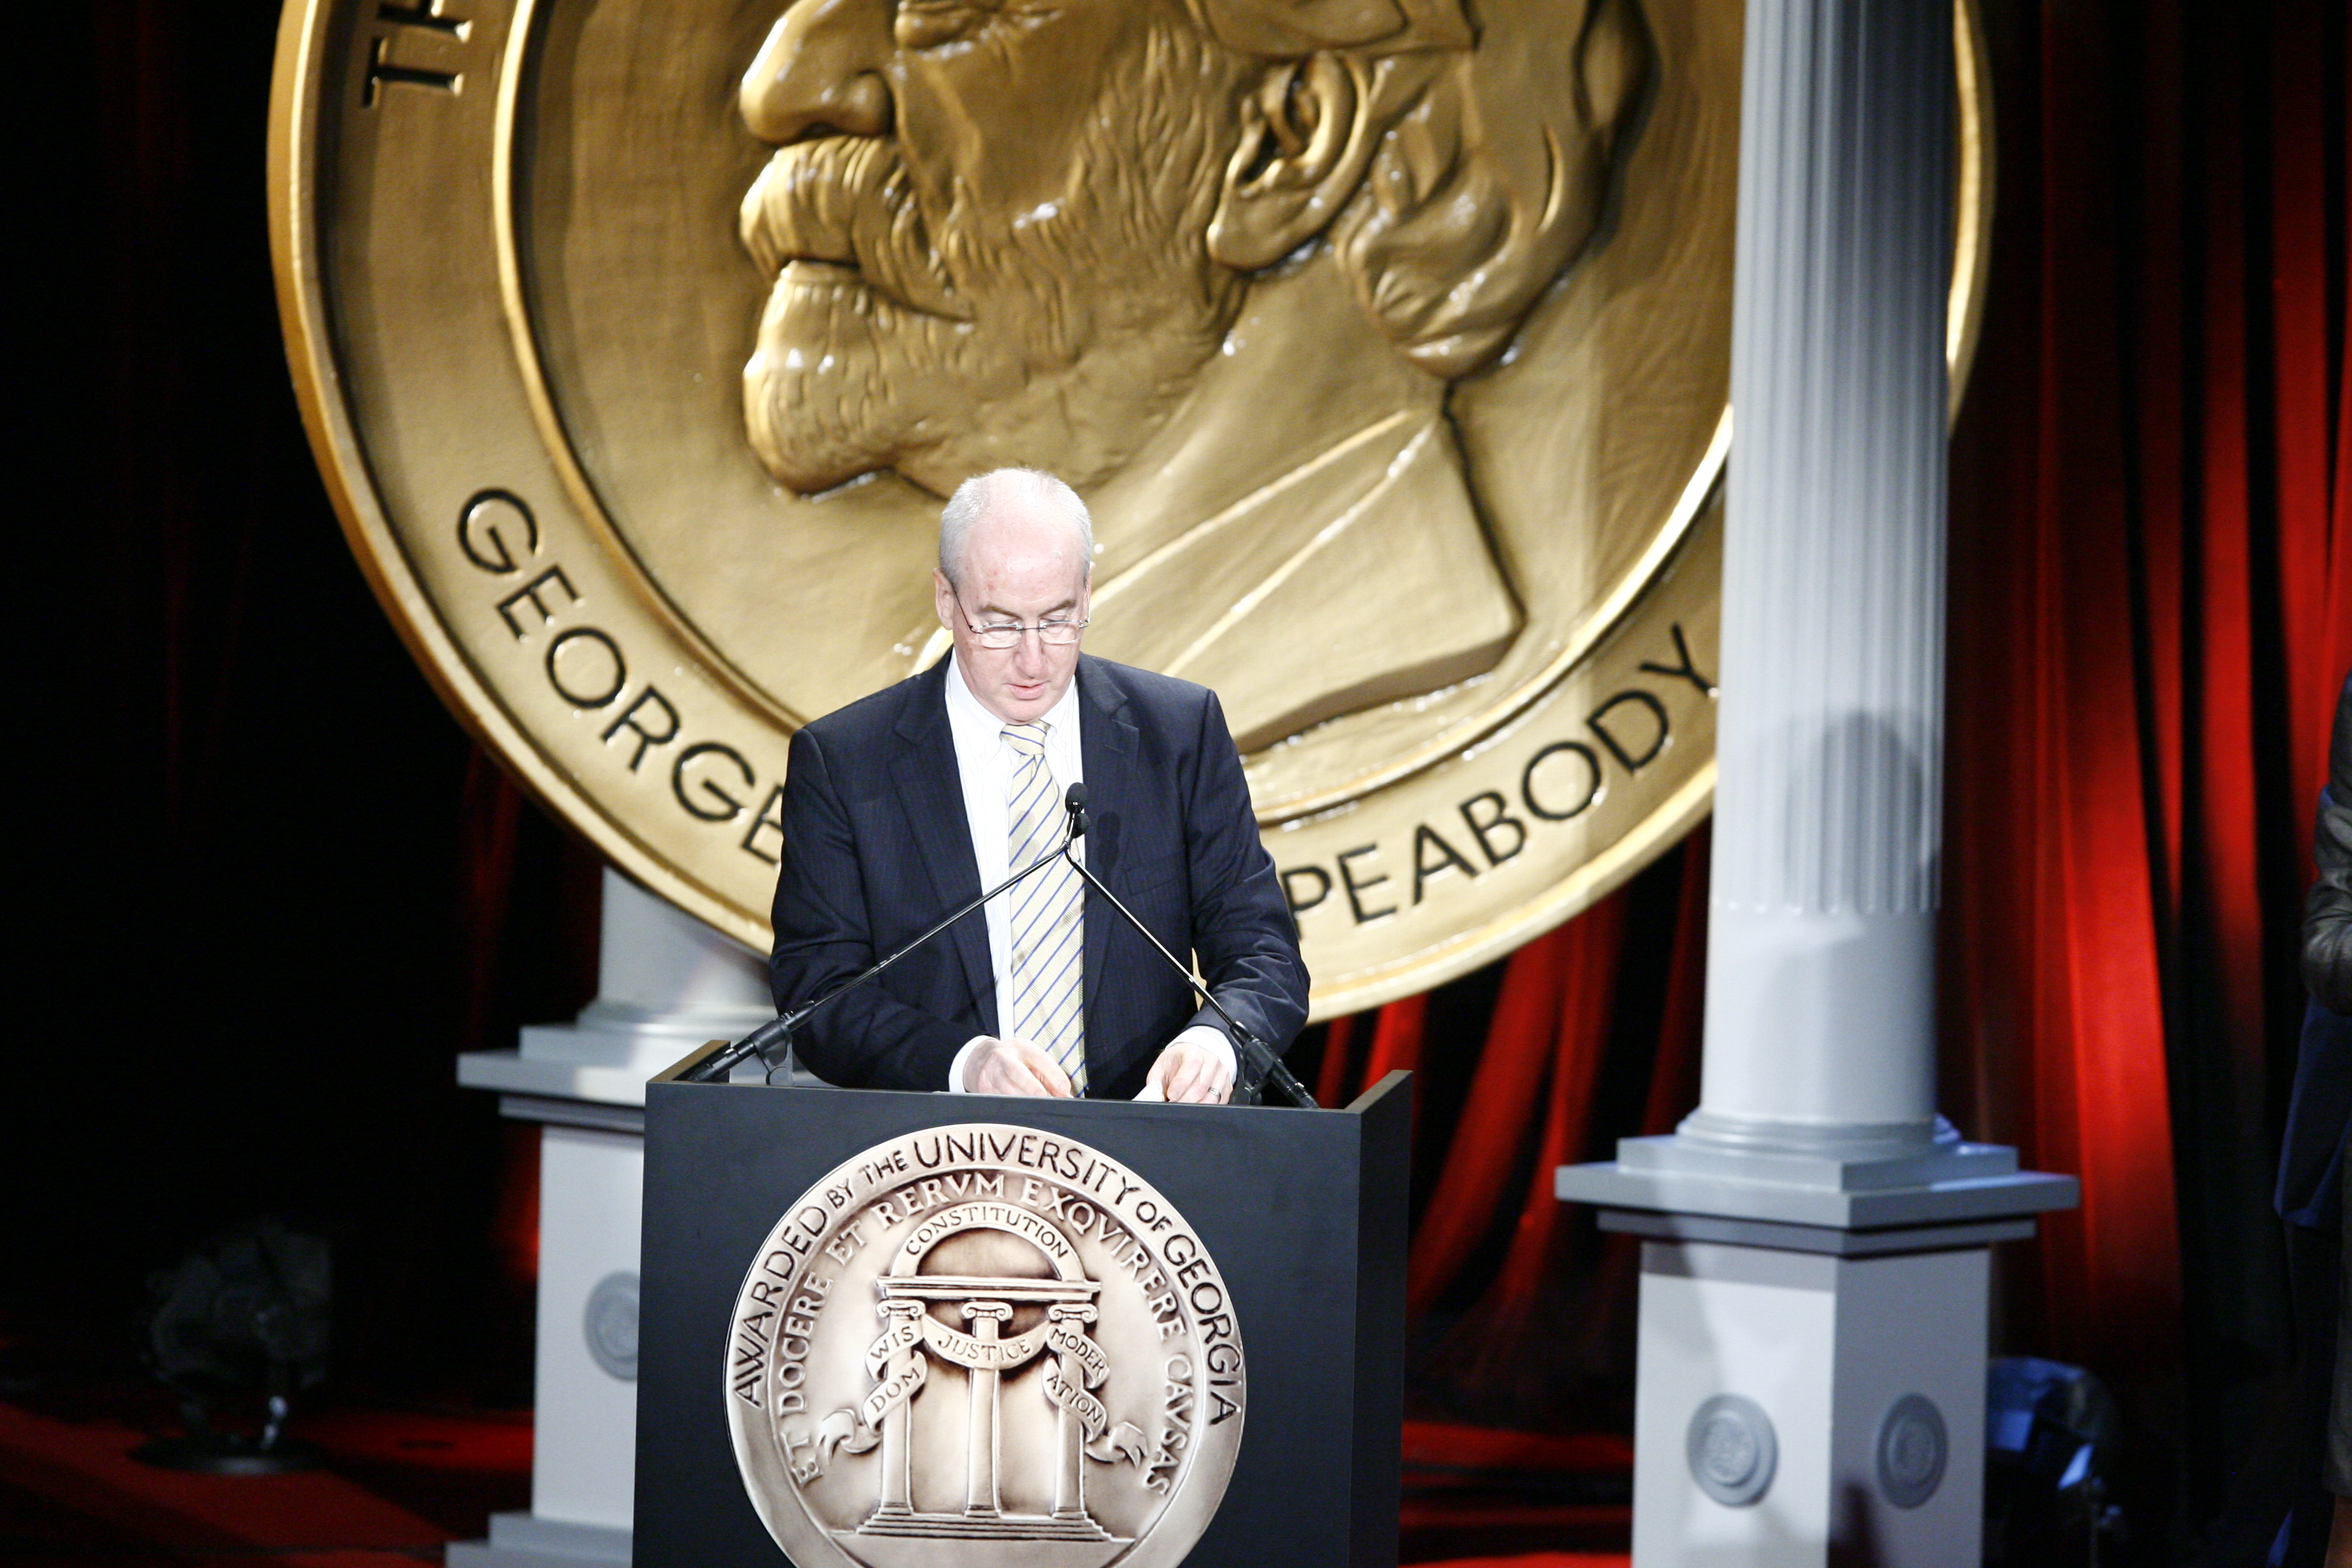 henry-schuster-at-the-68th-annual-peabody-awards-for-60-minutes-